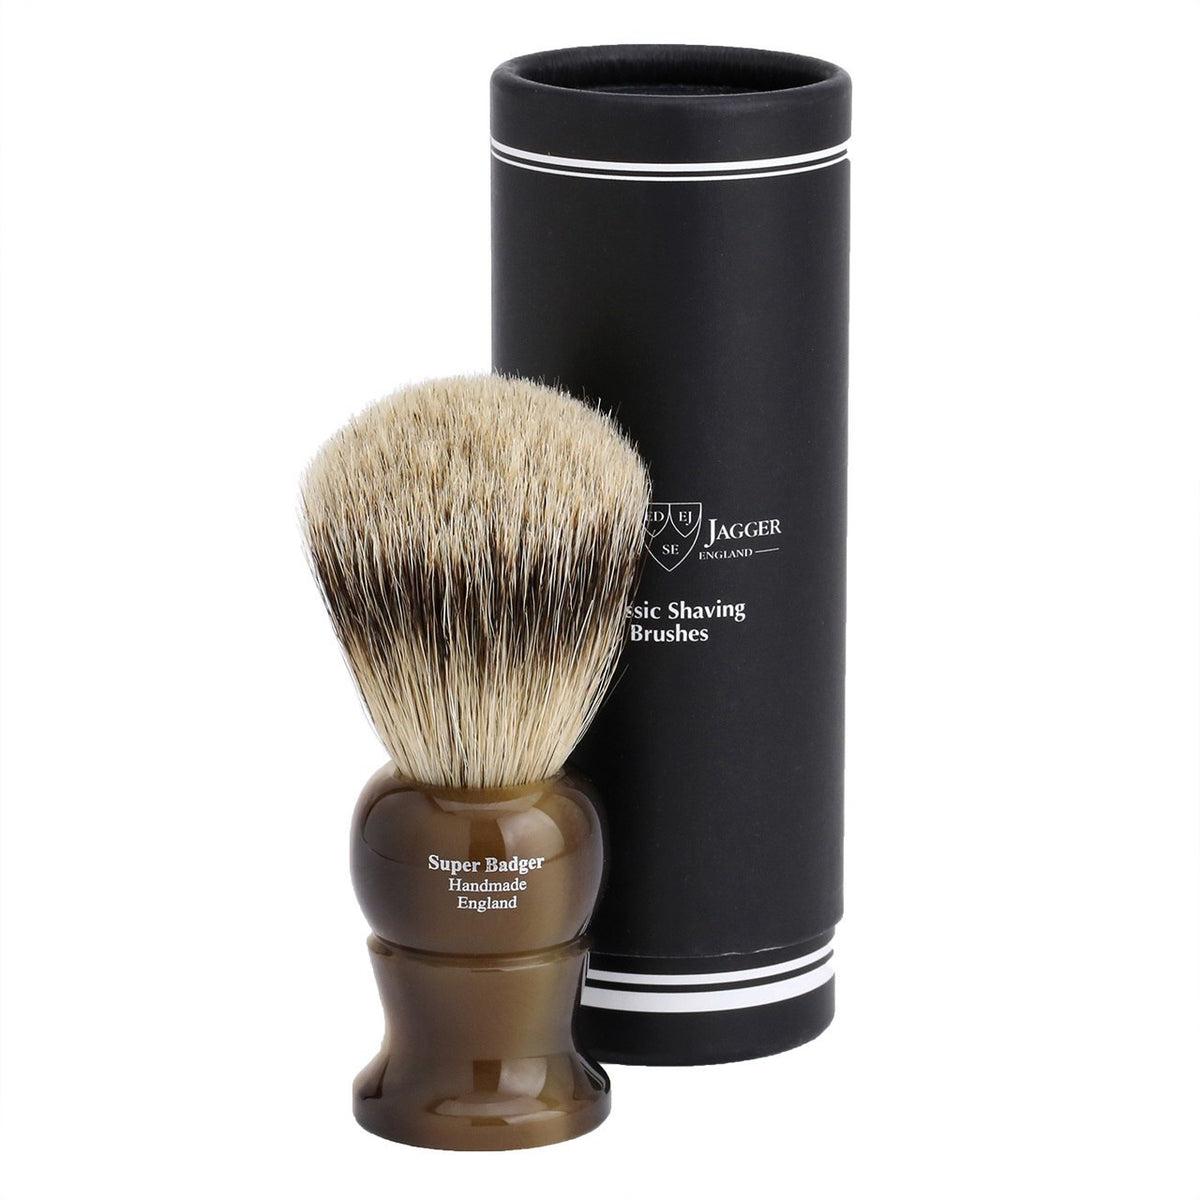 Edwin Jagger Super Badger Large Shaving Brush - Imitation Light Horn